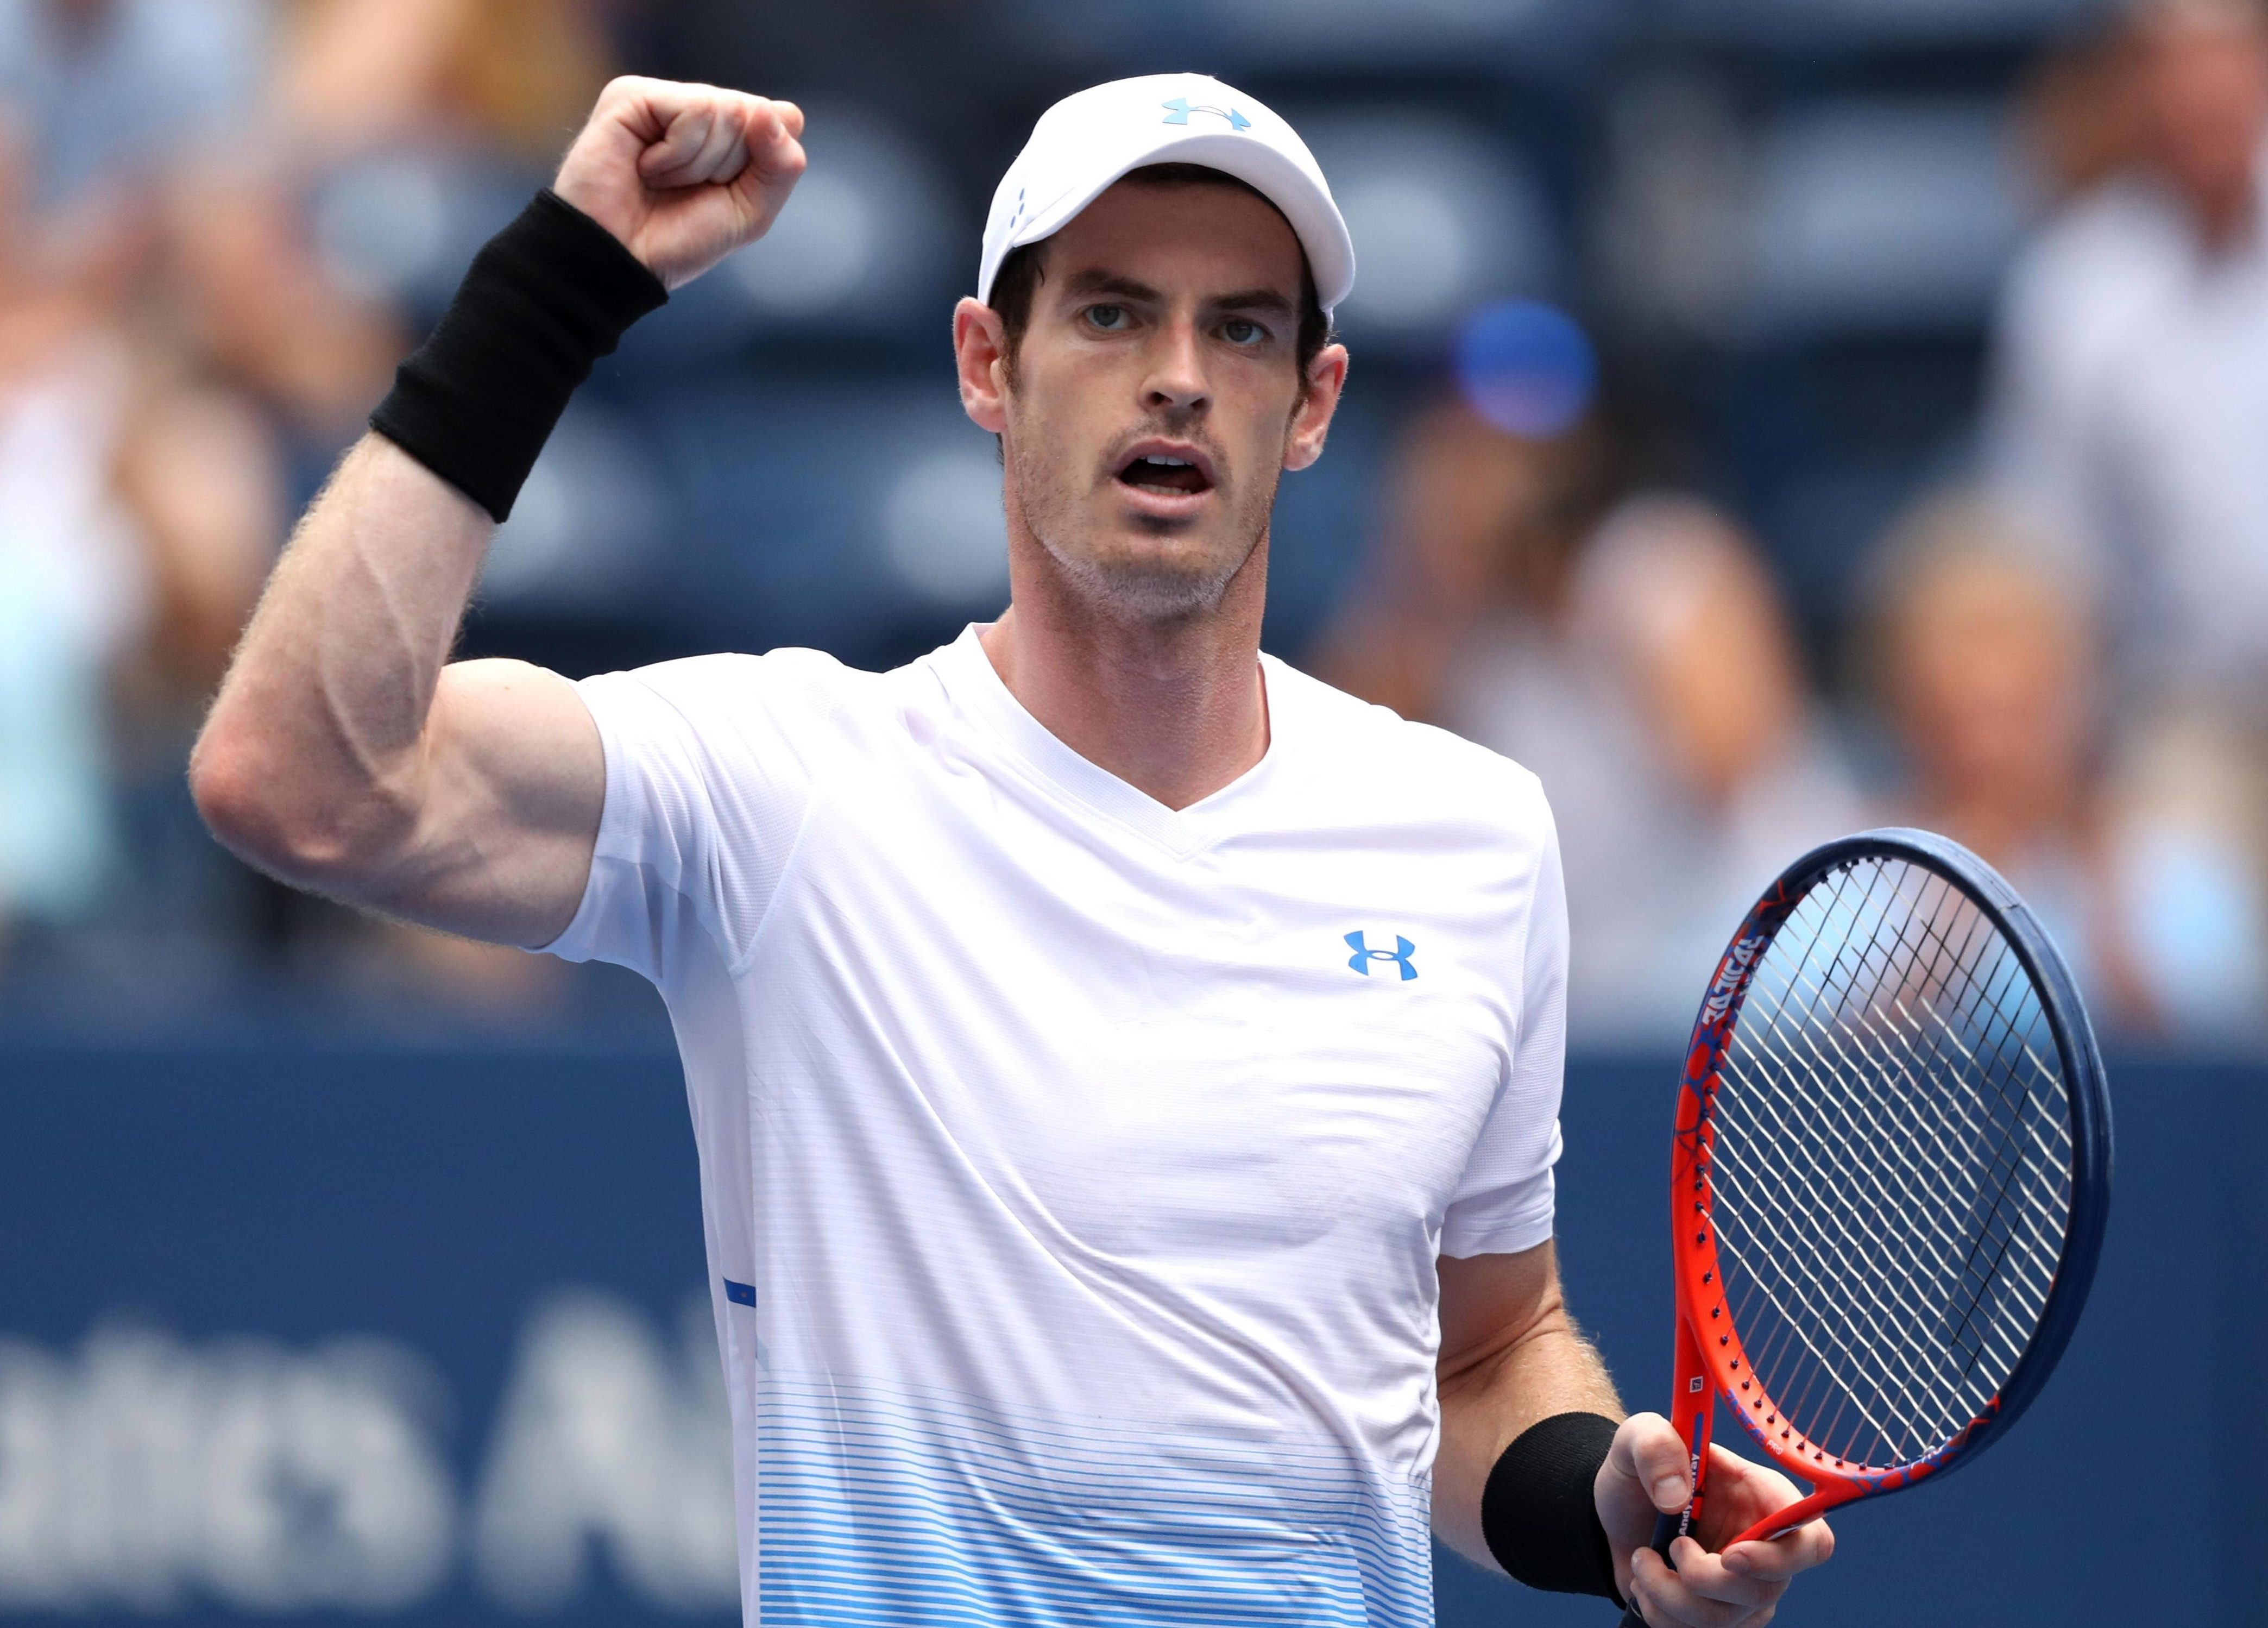 Andy Murray was quietly satisfied with his Grand Slam return, albeit a patchy win over James Duckworth